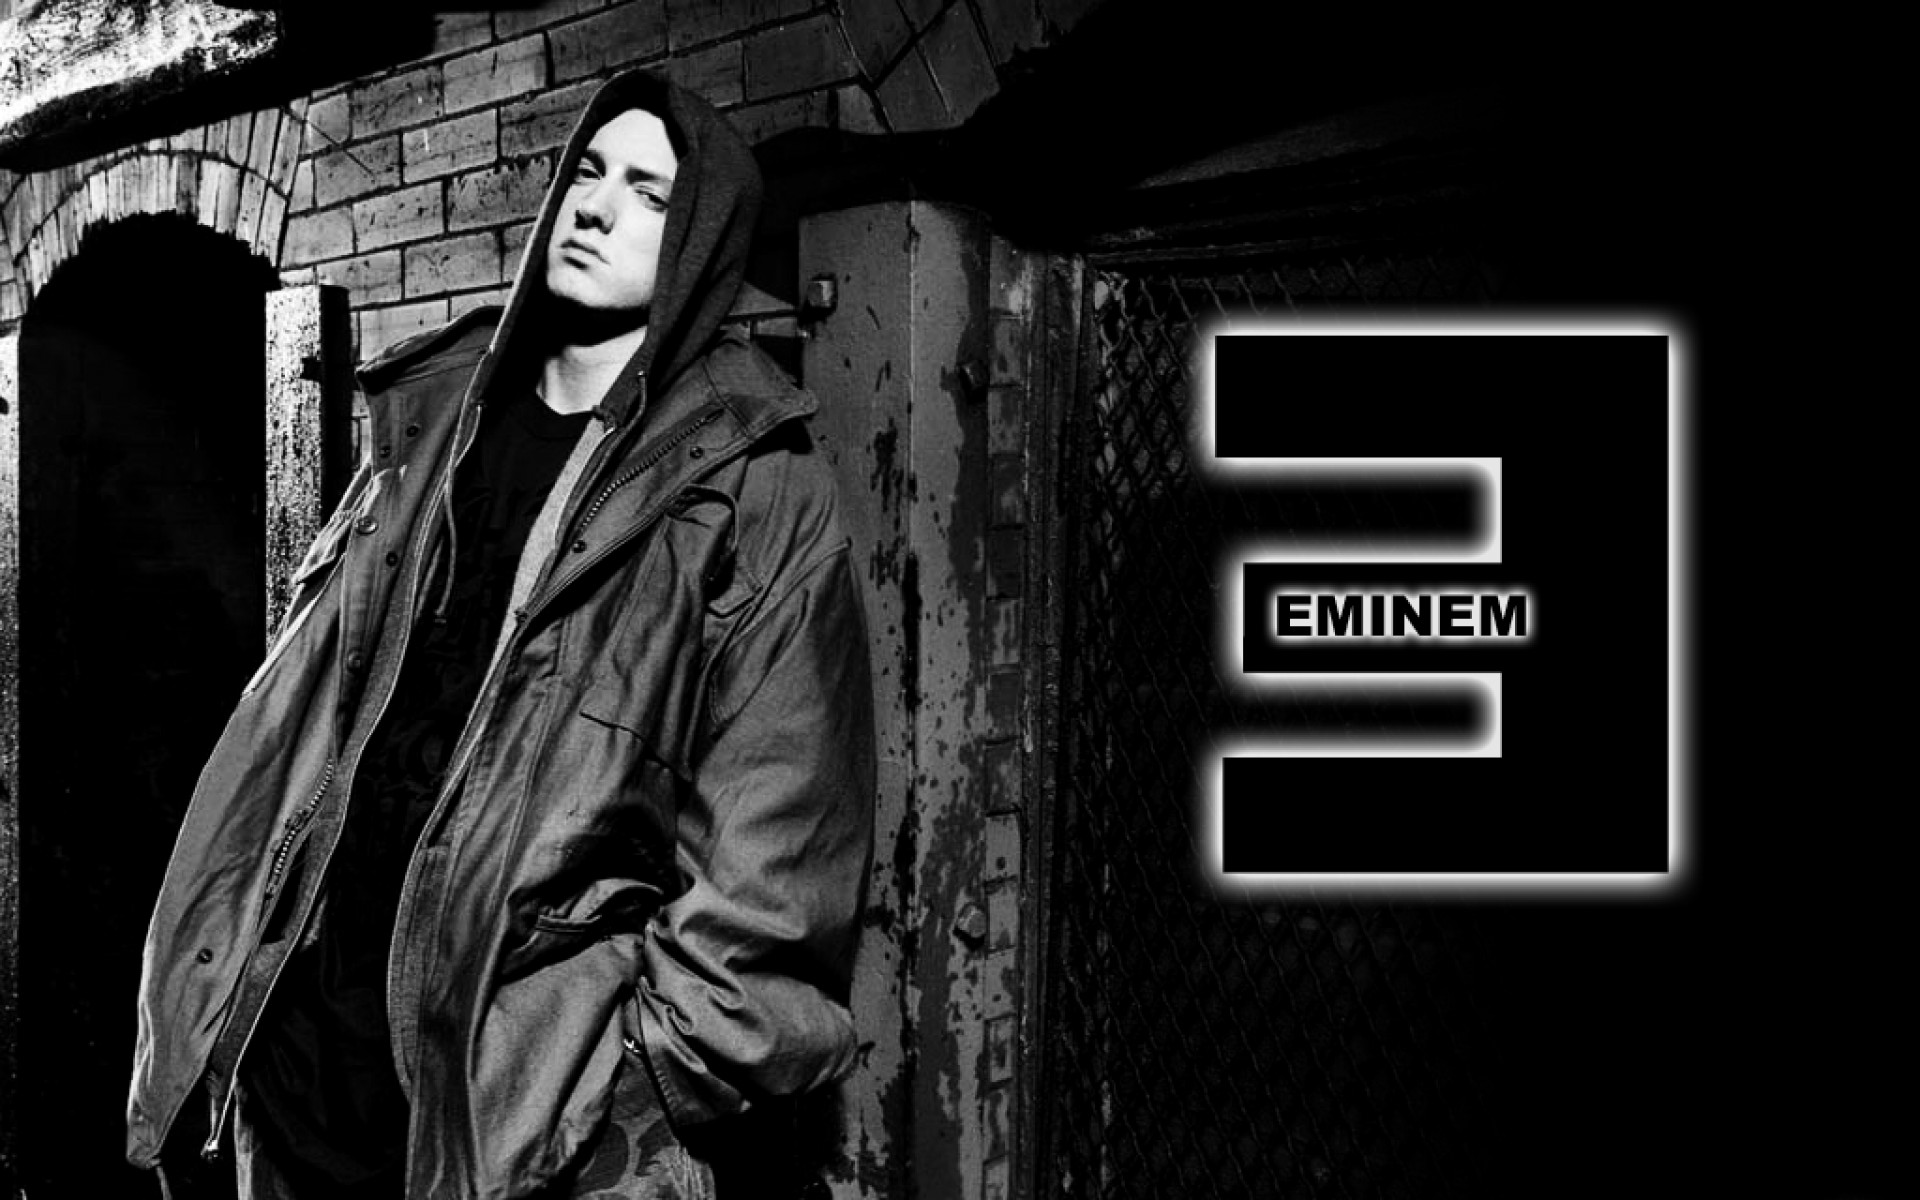 Eminem Wallpapers HD A35